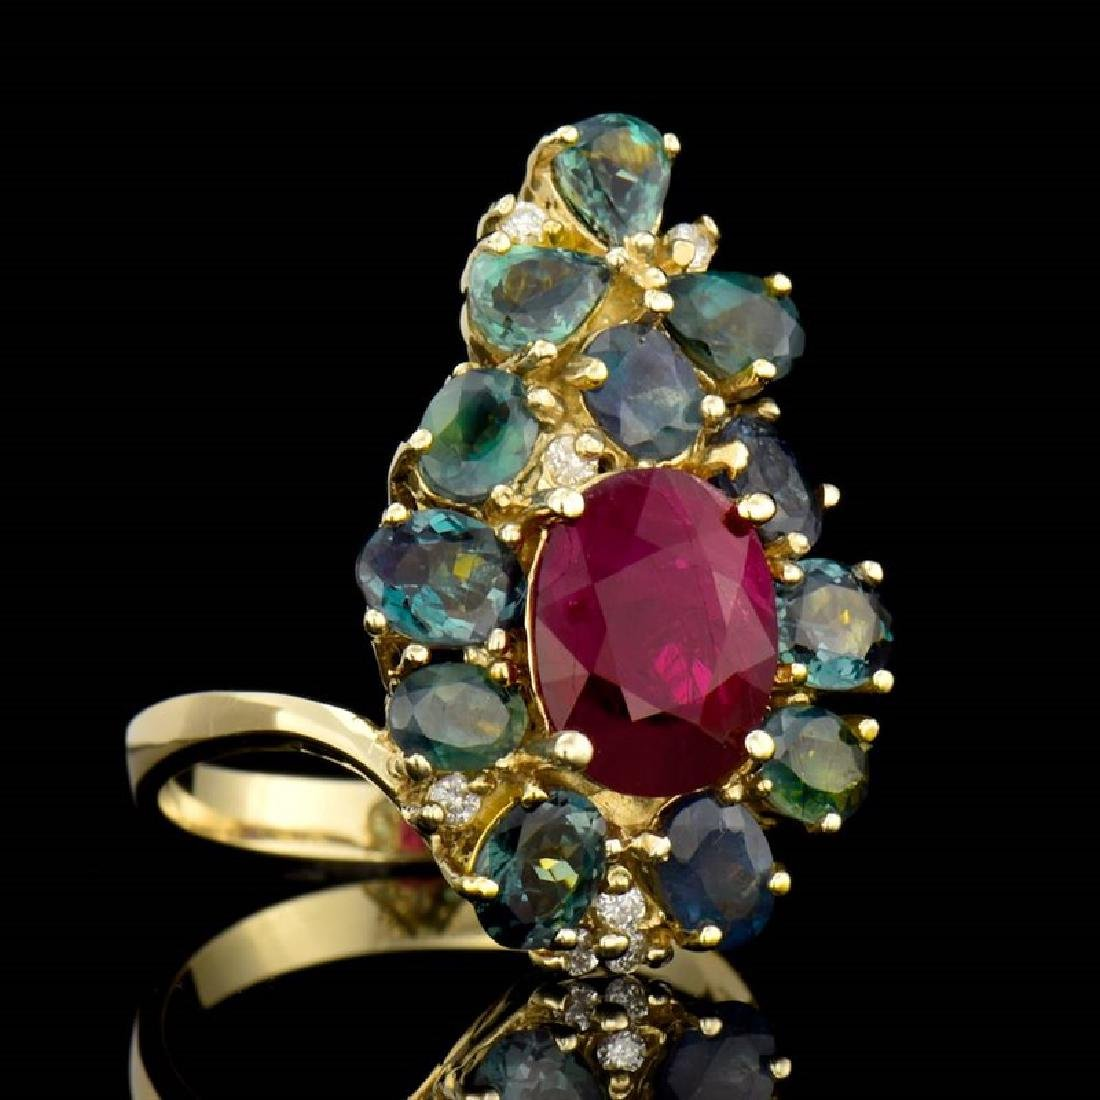 3.22ct Oval Alexandrite / 2.75ct Oval Ruby 14K Yellow